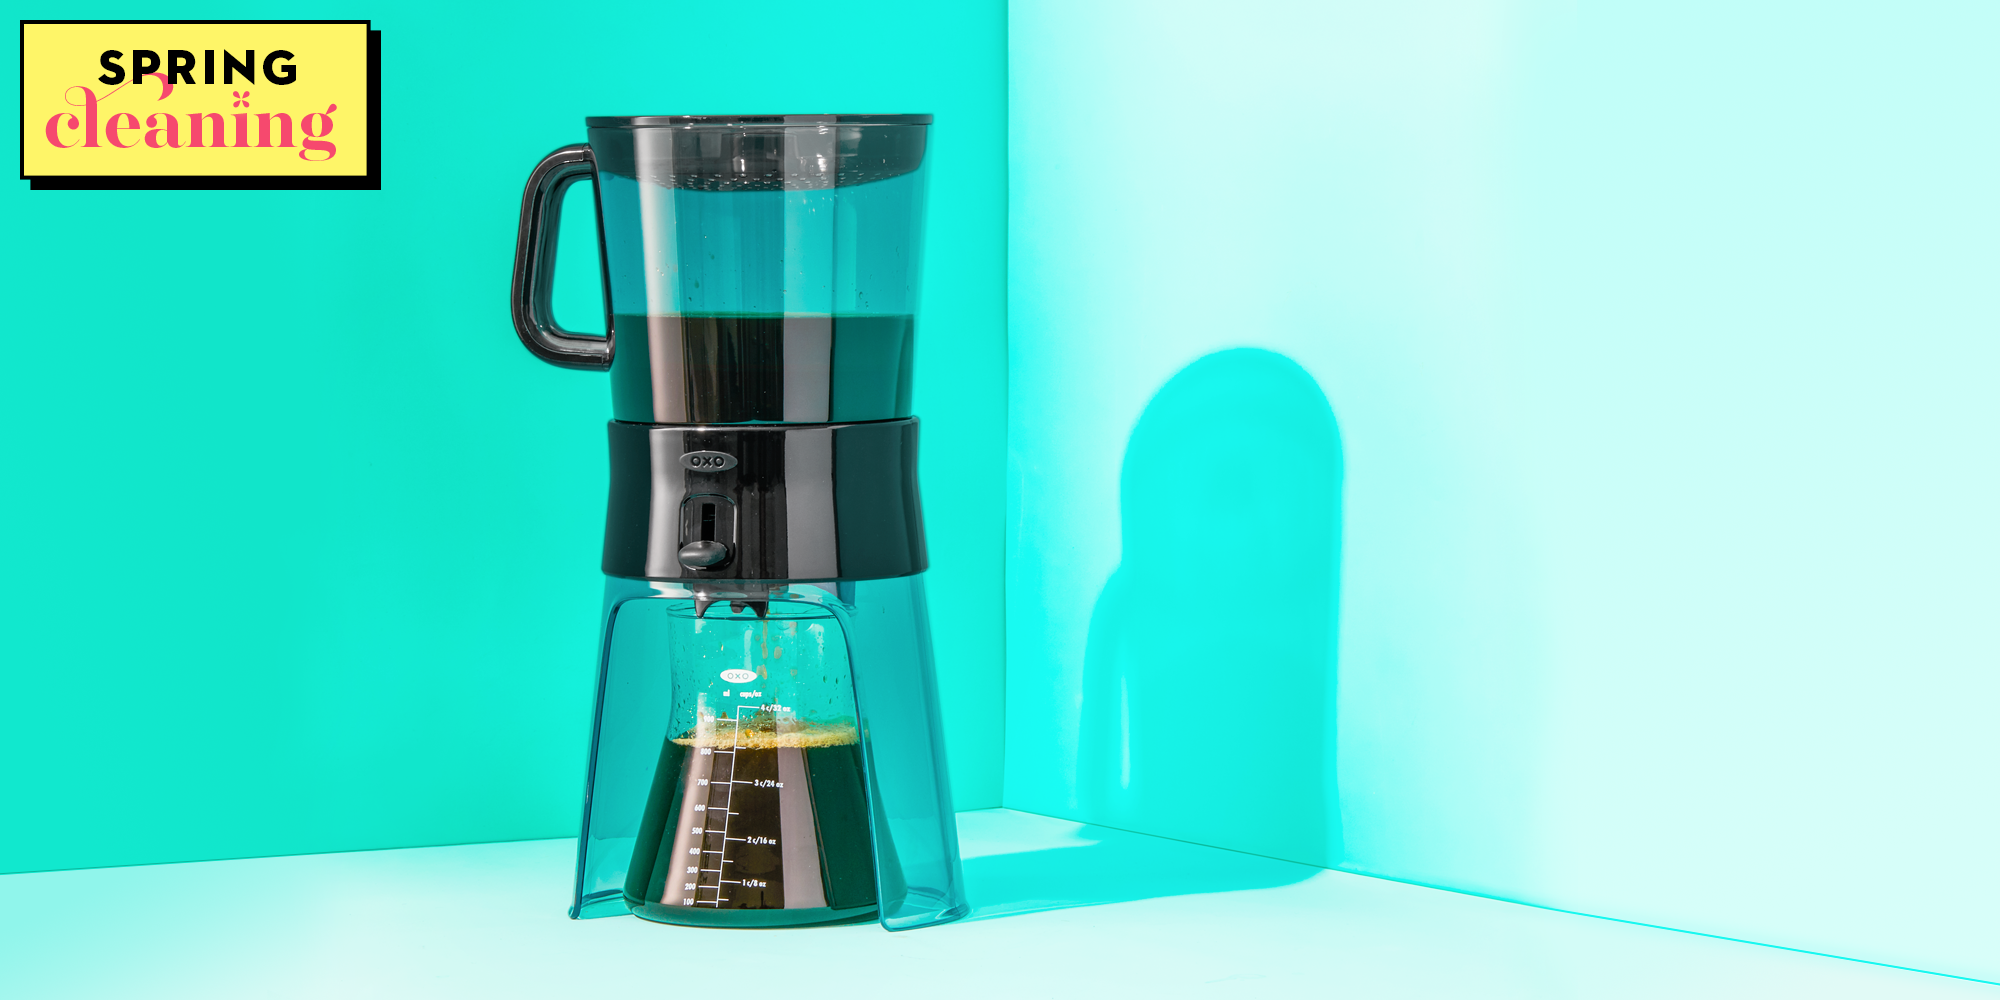 How To Clean A Coffee Maker Tips For Cleaning Coffeemakers With